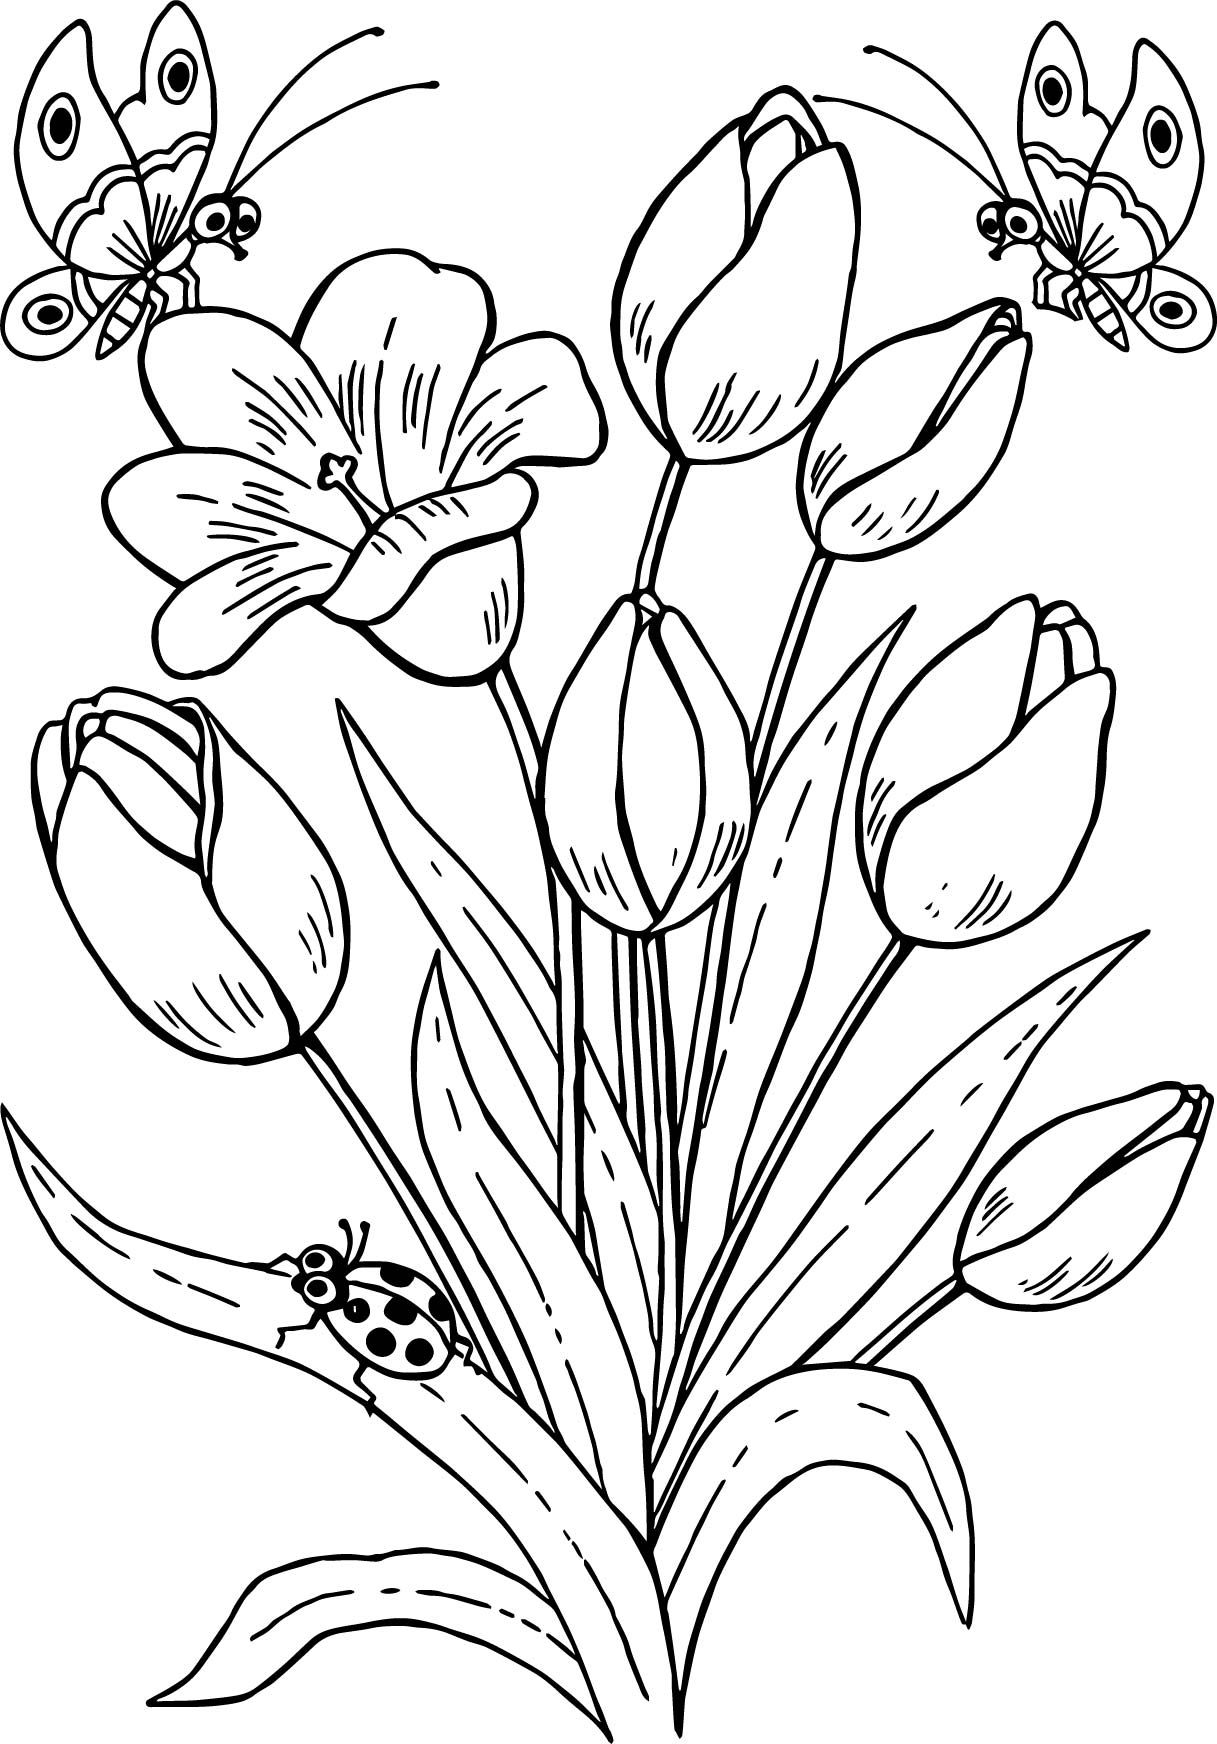 flower pattern coloring pages free printable flower pattern coloring page 06 pattern pages coloring flower